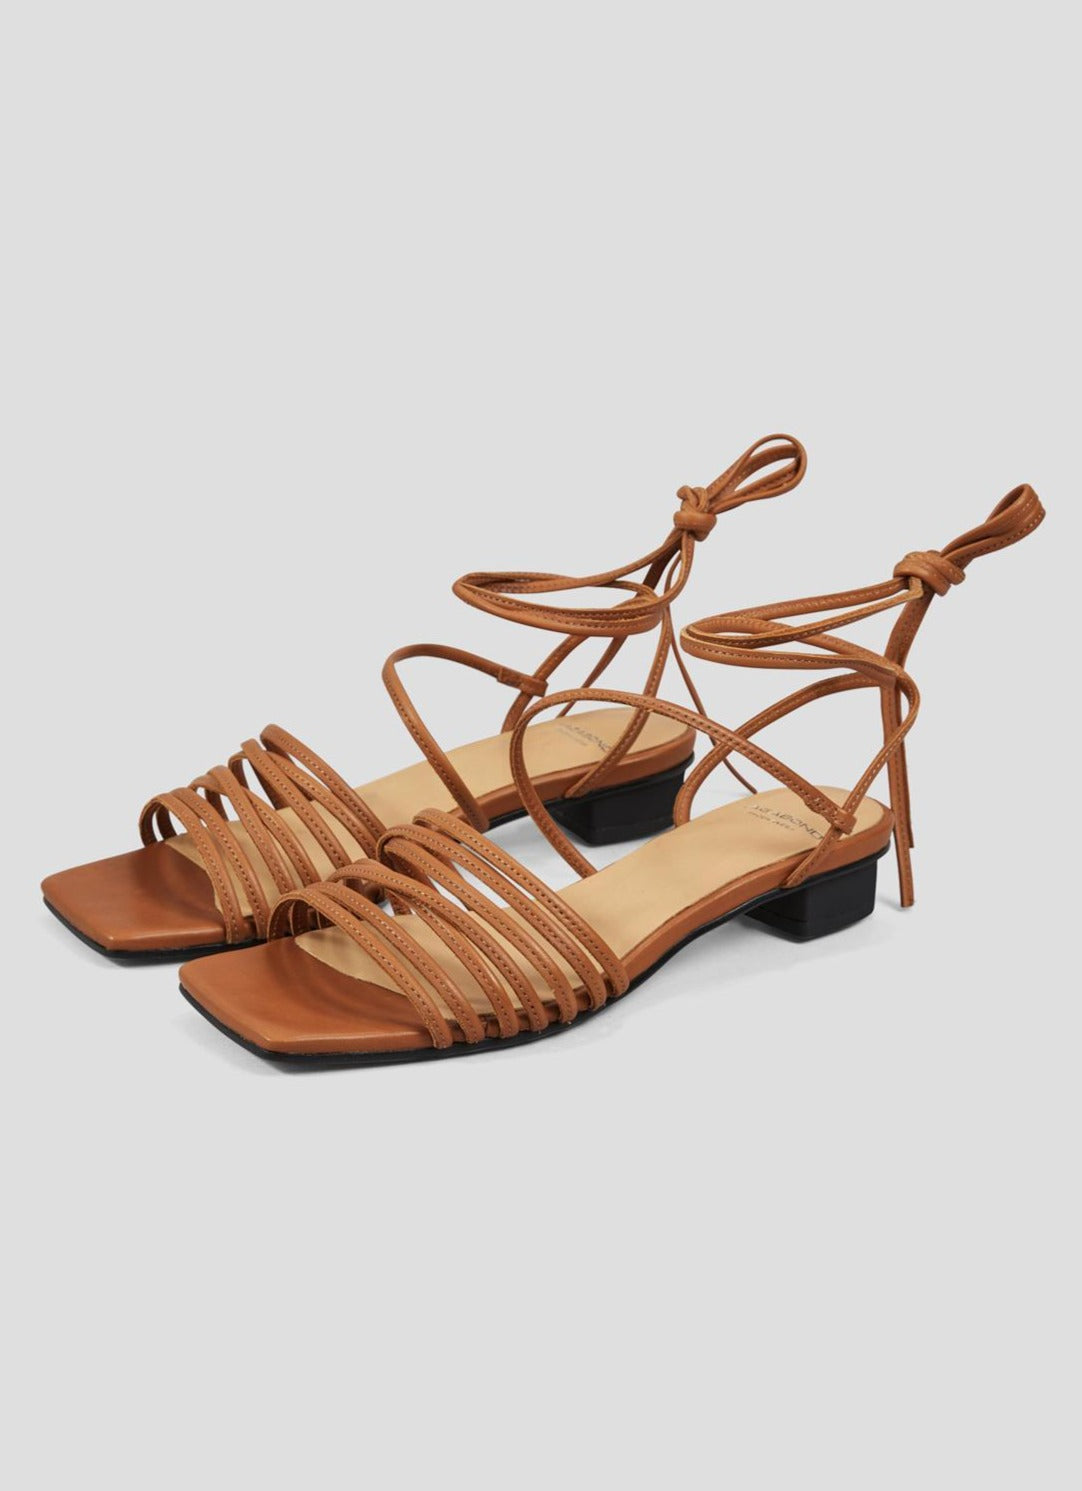 Anni Sandal - Saddle